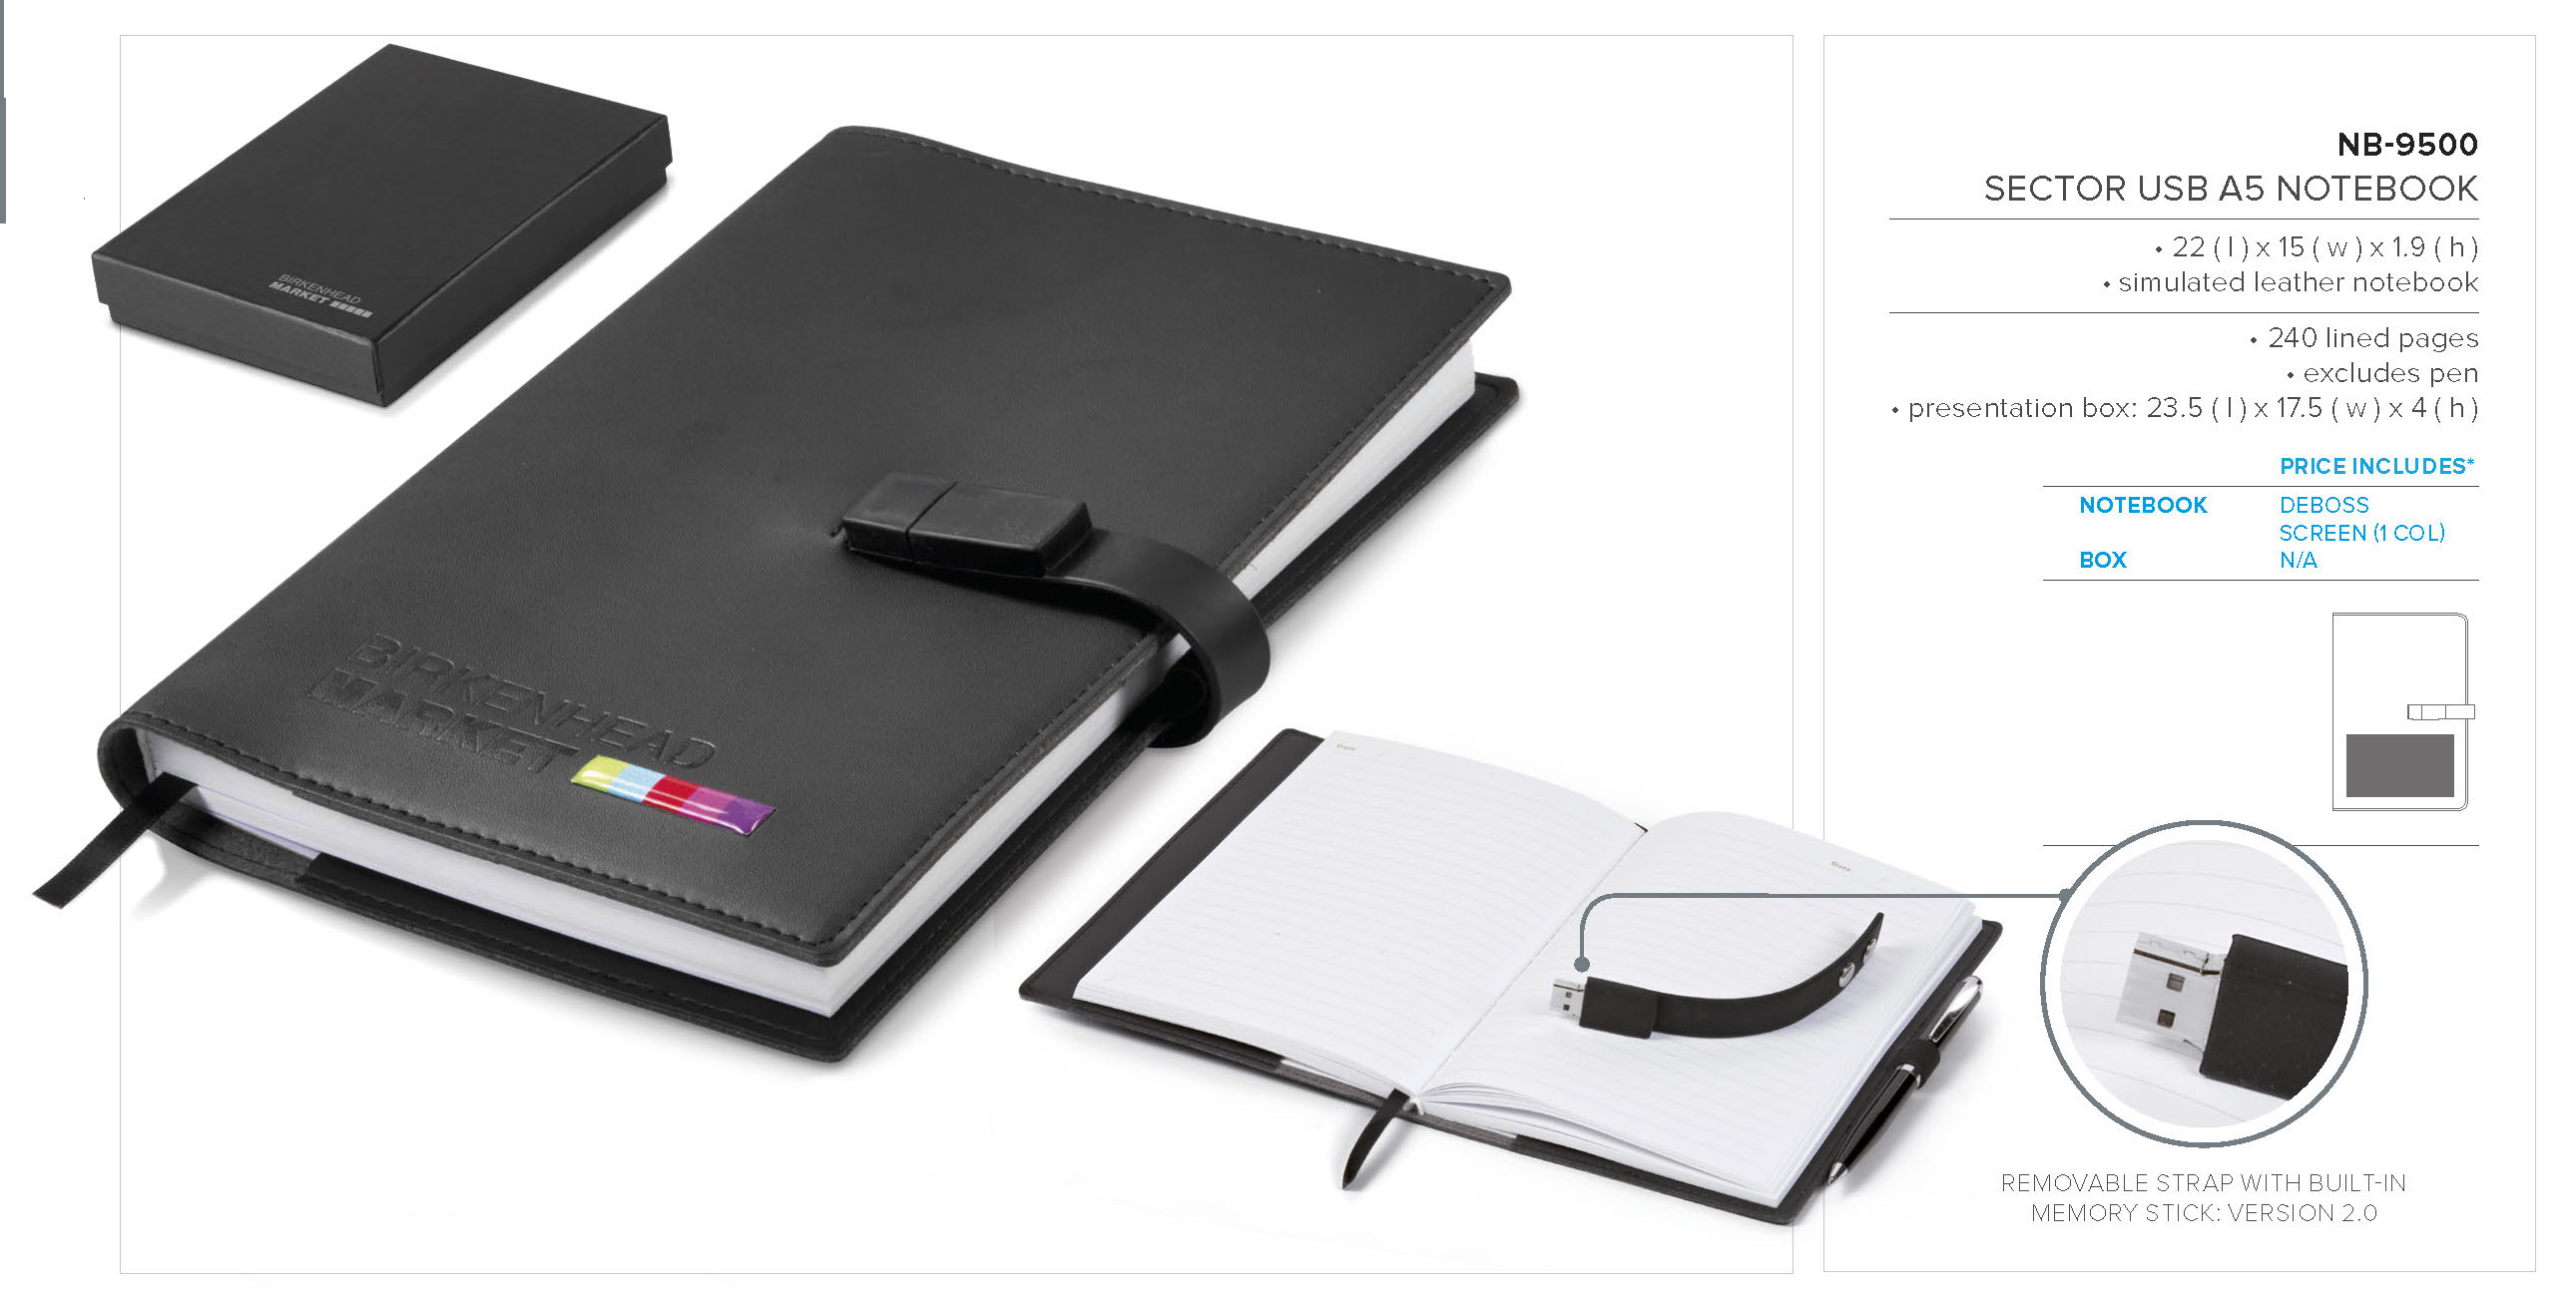 Sector Usb Notebook